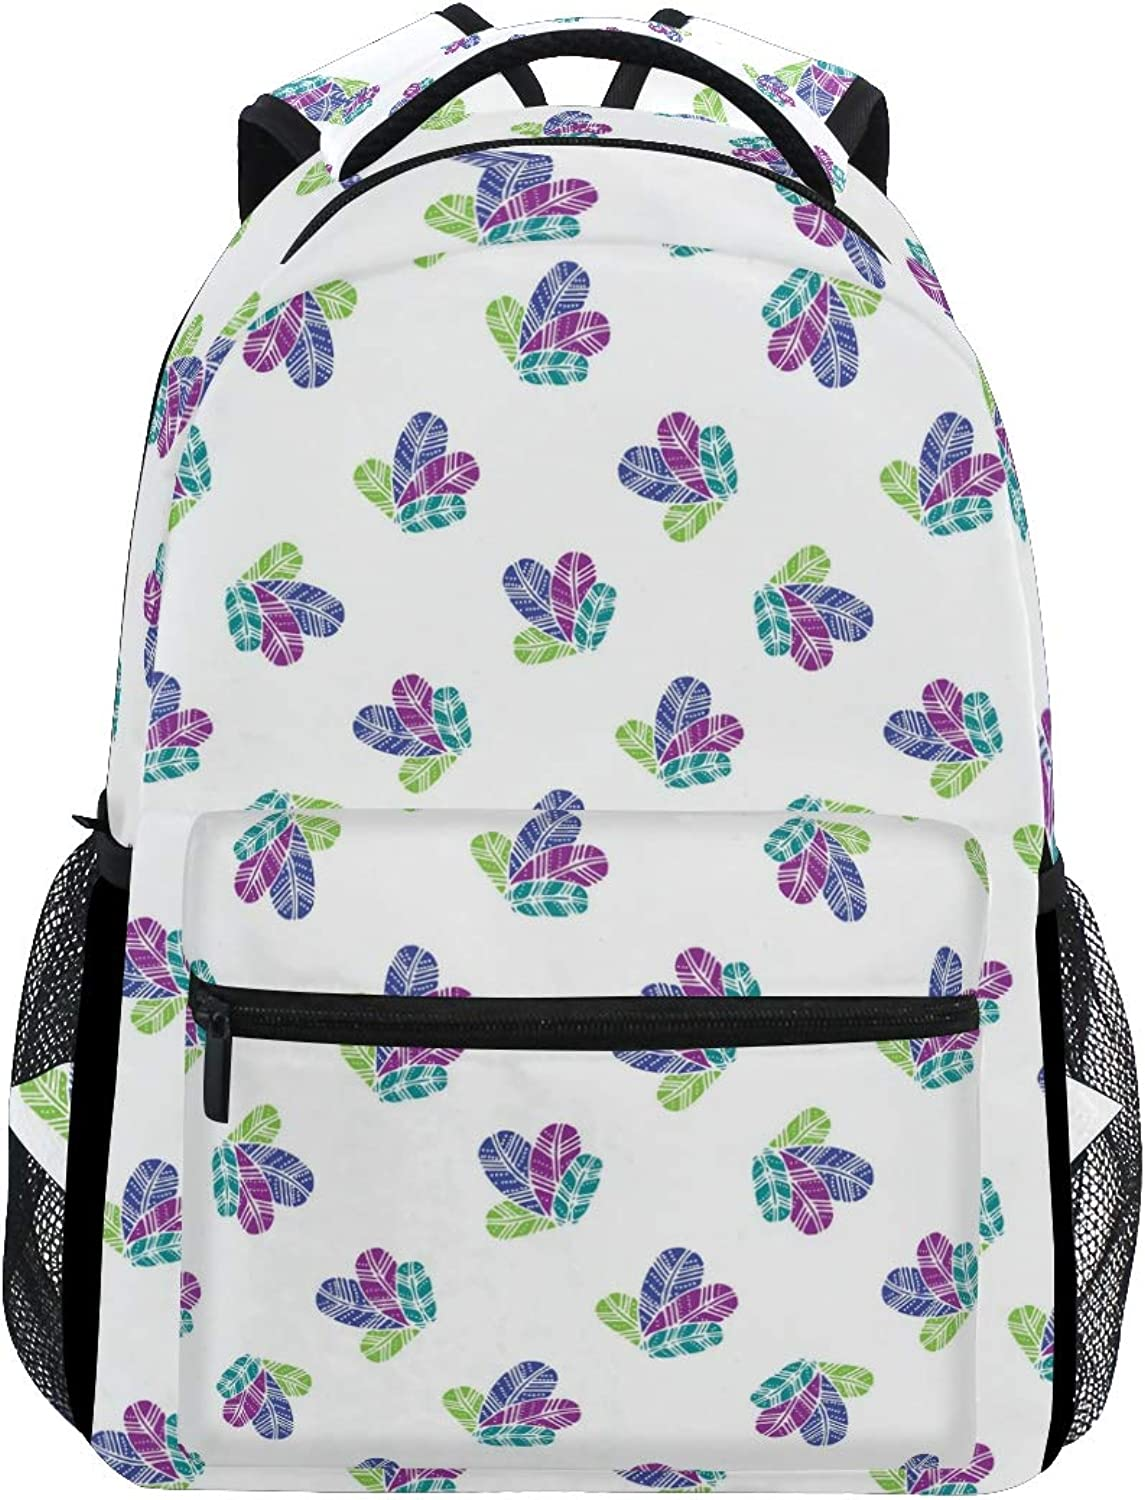 Bunch of colorfull Feathers Pattern Large Backpack Travel Outdoor Sports Laptop Backpack for Women & Men College School Water Resistant